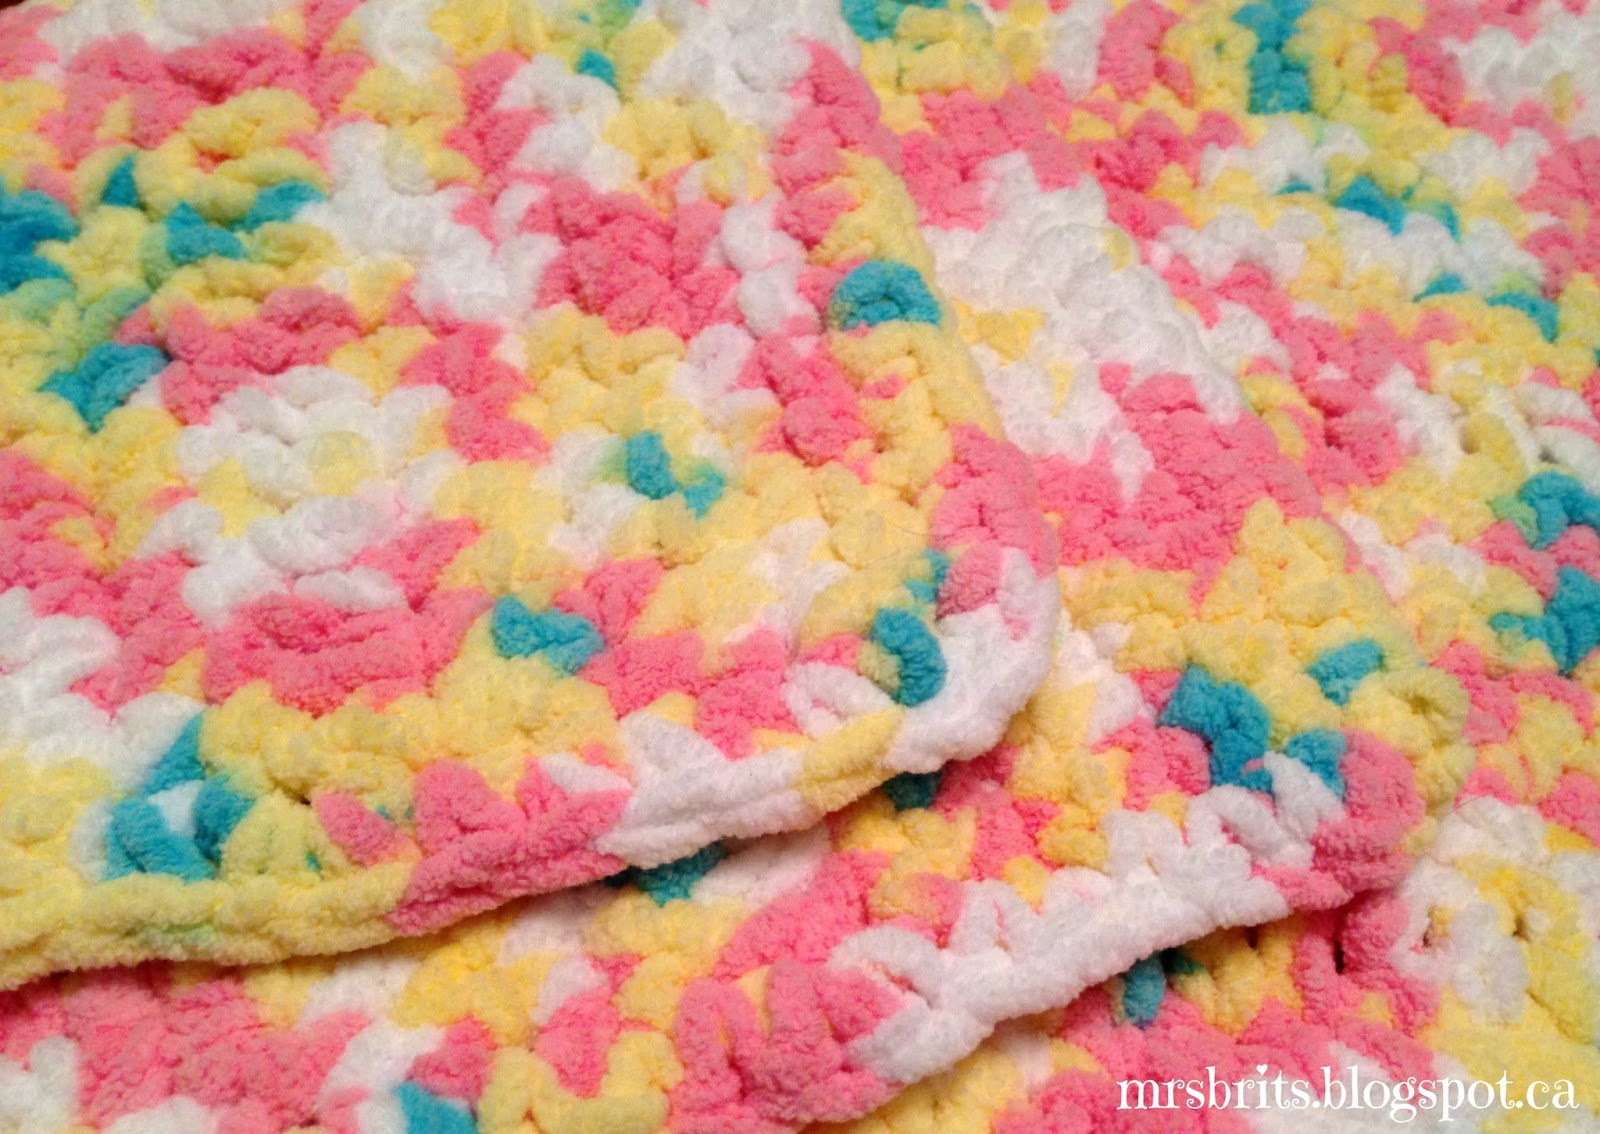 Free Crochet Patterns For Baby Sport Yarn : crochet baby blanket pattern super bulky yarn Car Tuning